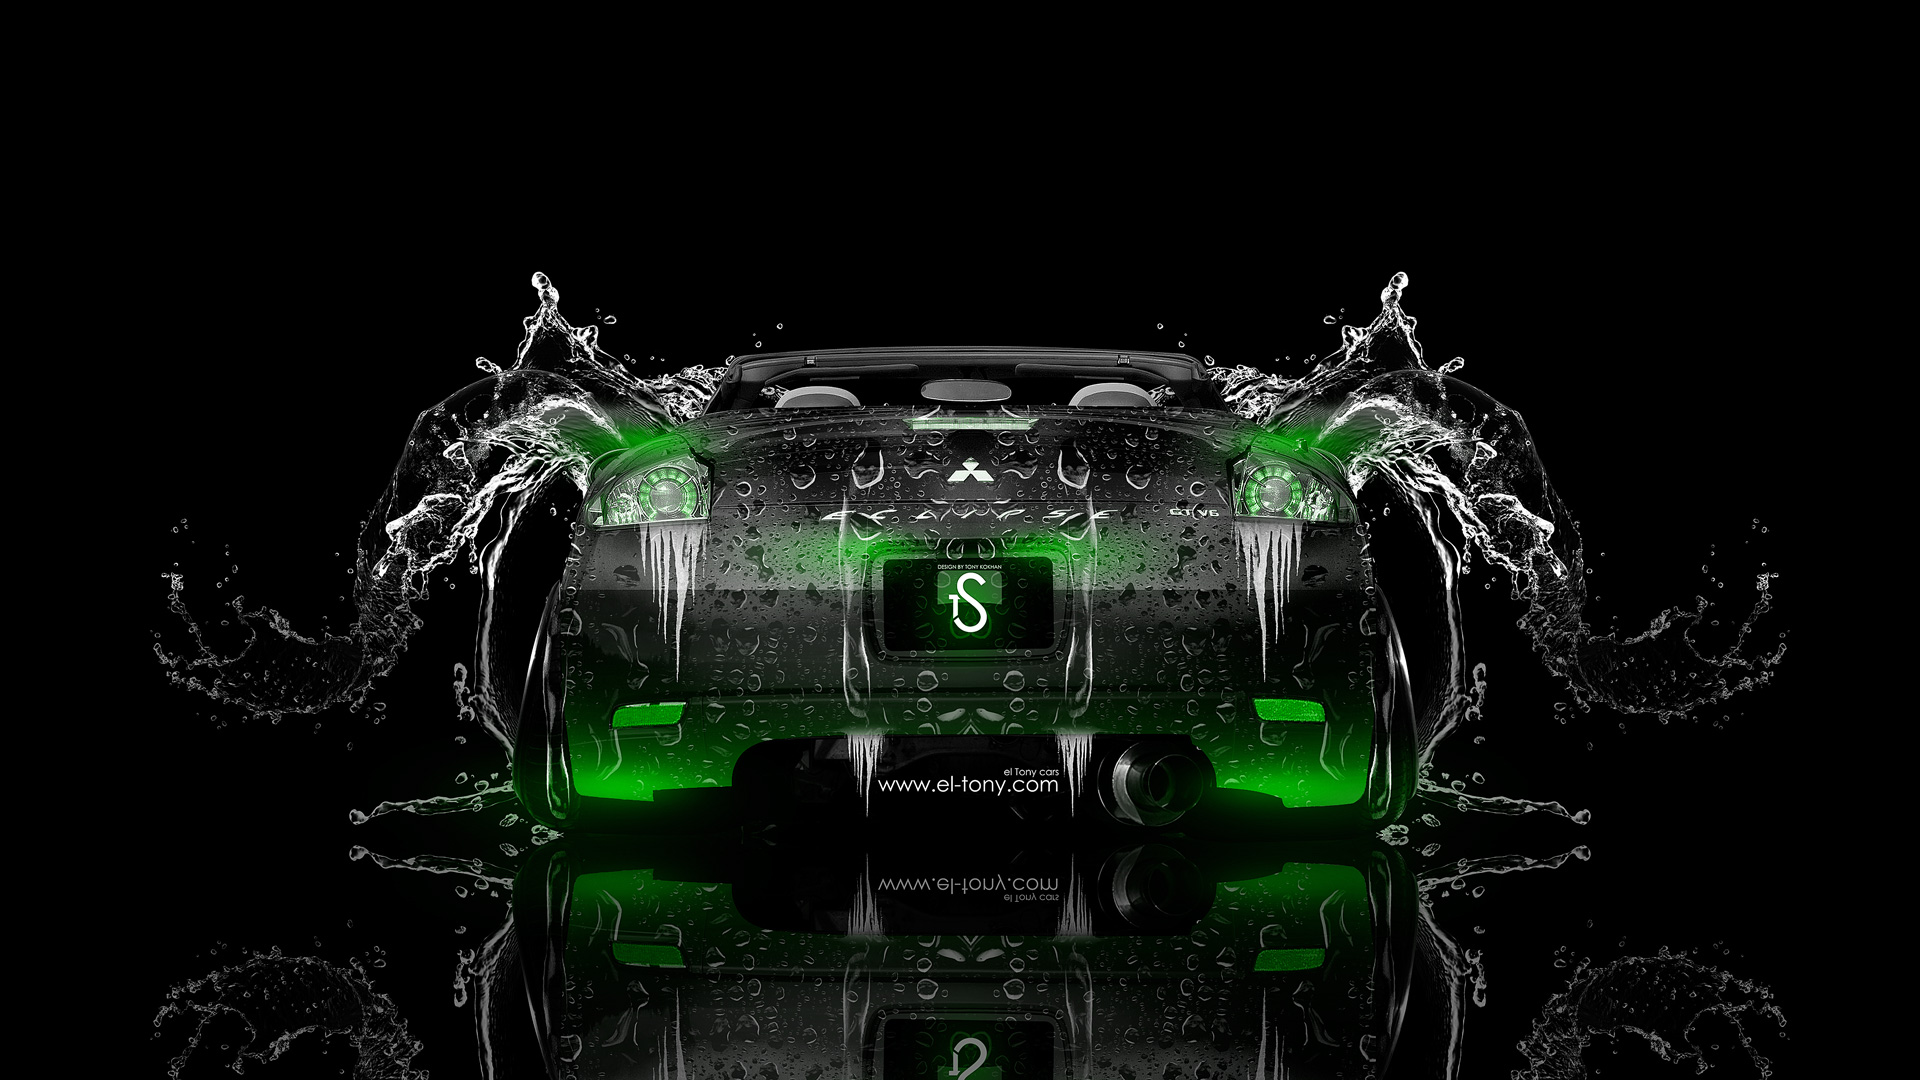 Delicieux Mitsubishi Eclipse Back Water Car 2014 Green Neon